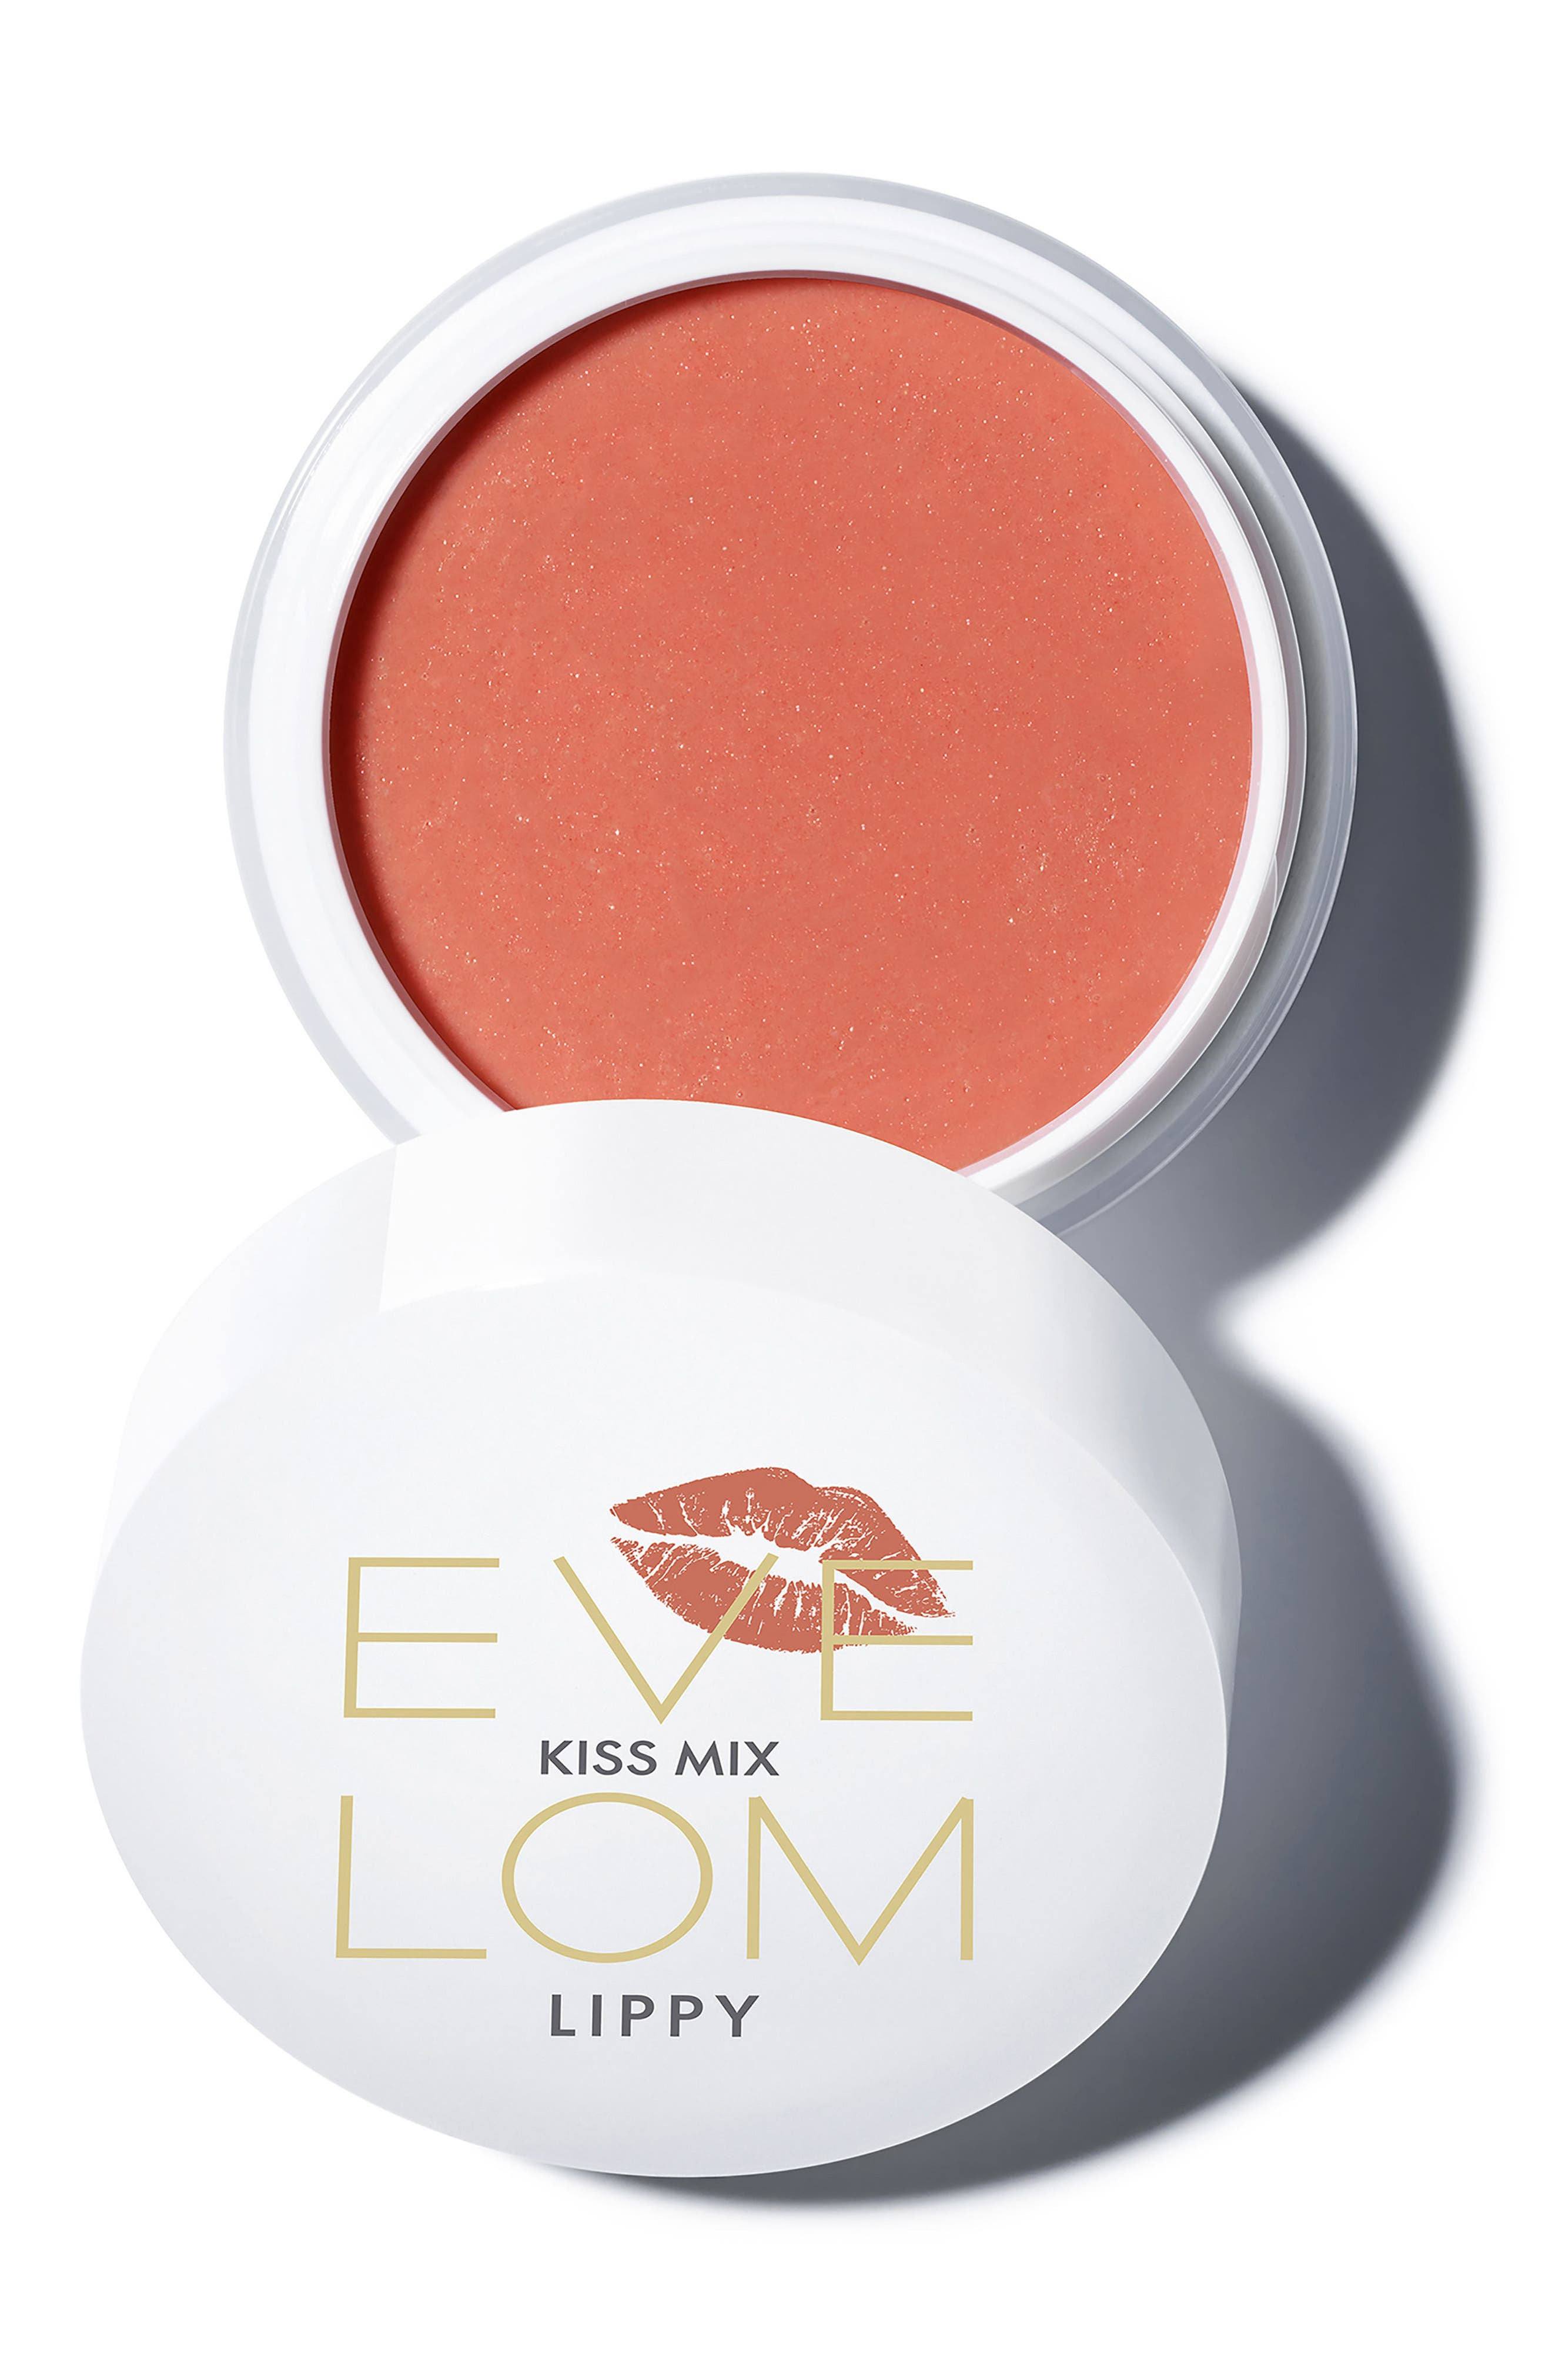 Main Image - SPACE.NK.apothecary EVE LOM Tinted Kiss Mix Lip Treatment